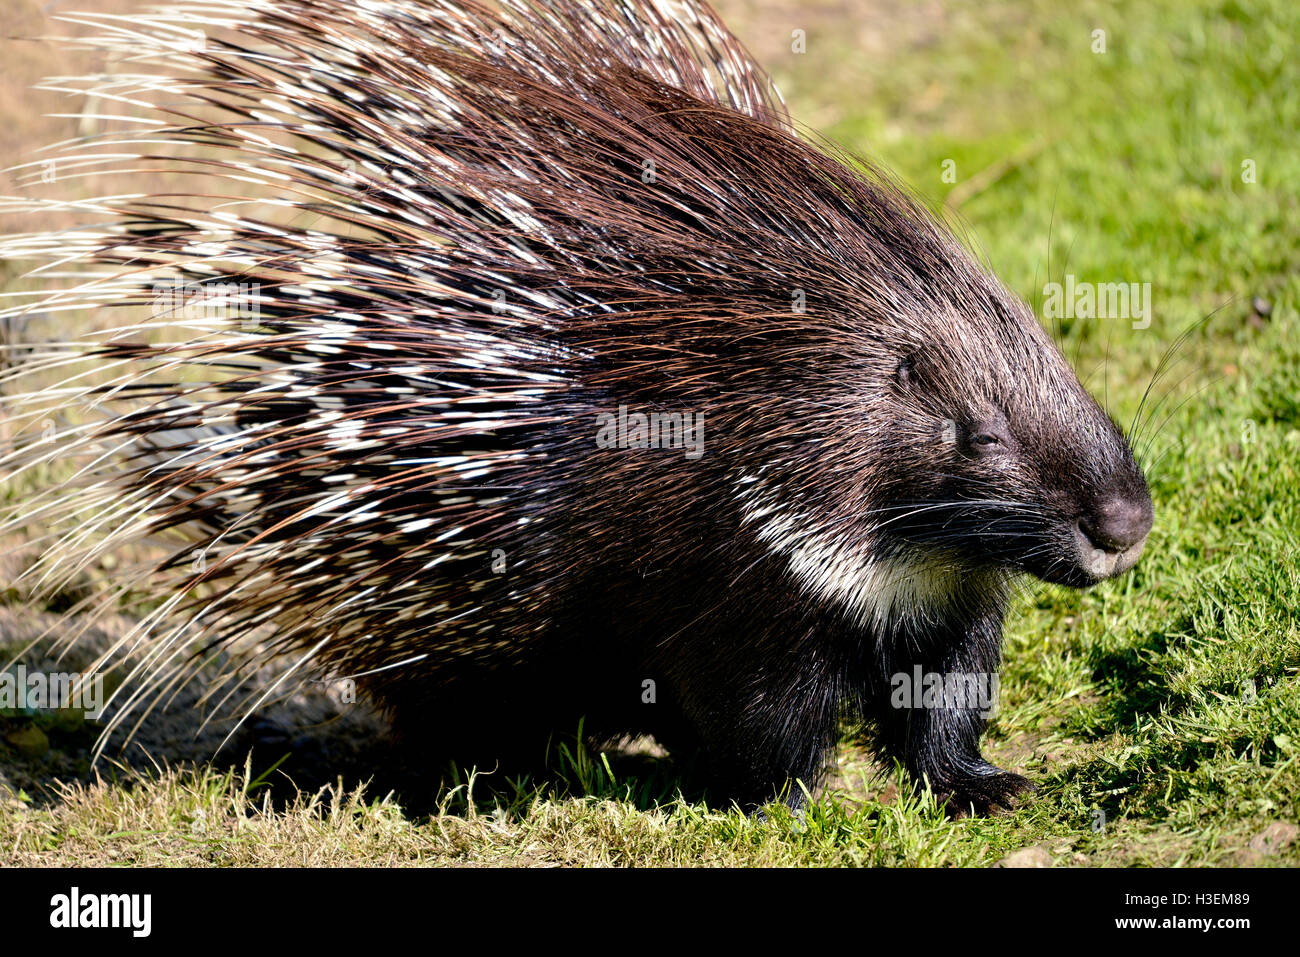 Closeup Indian Crested Porcupine (Hystrix indica) on grass - Stock Image